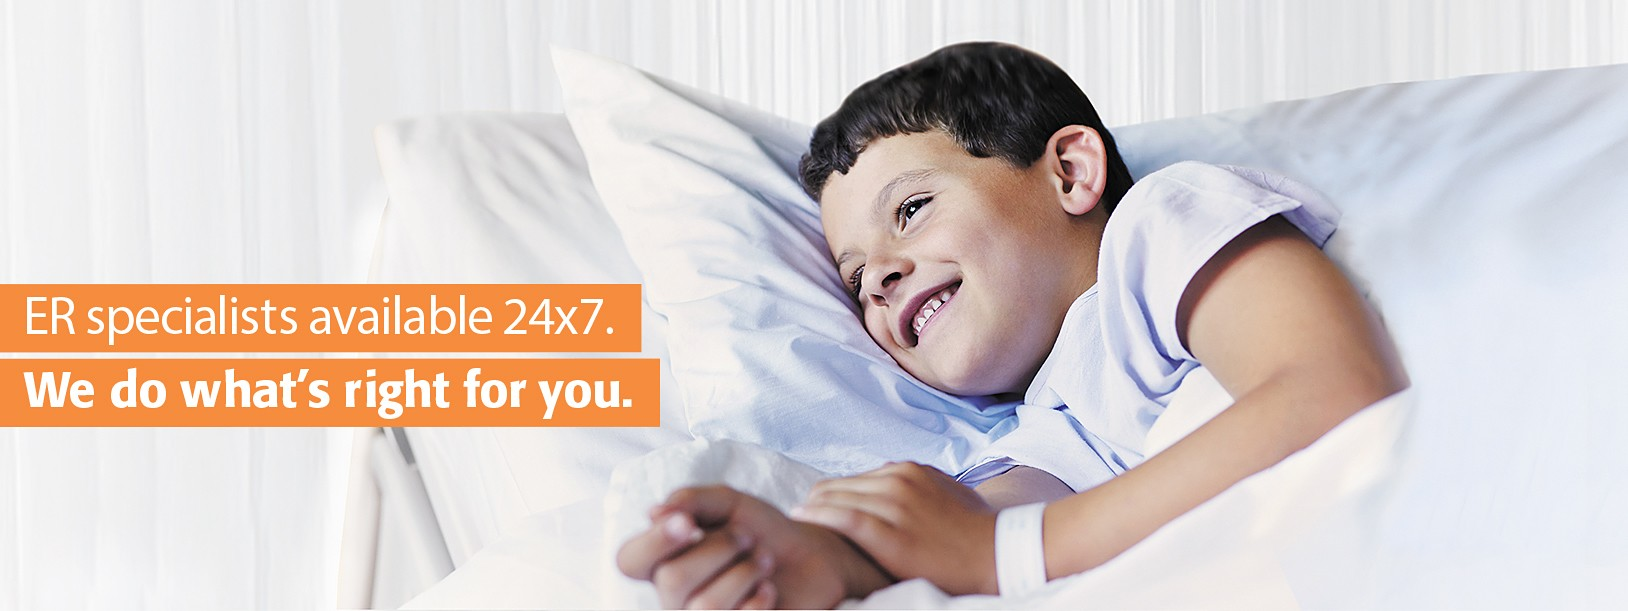 ER specialists available 24x7. We do what's right for you.